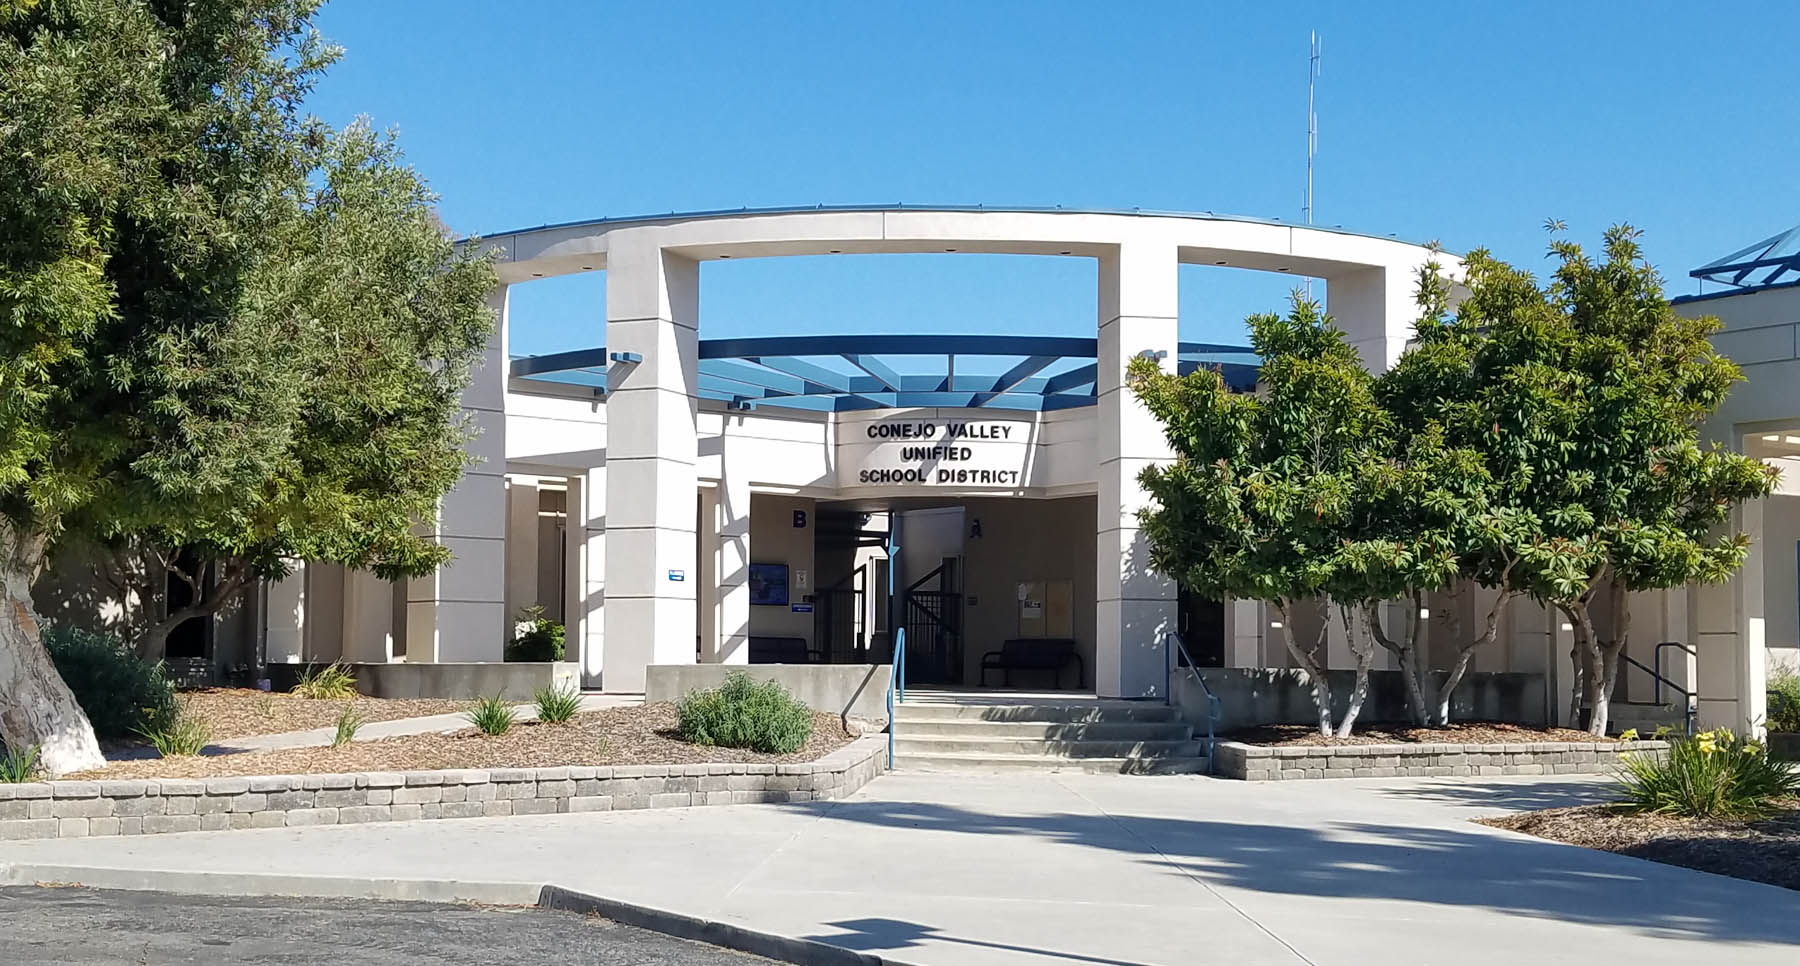 Conejo Valley Unified School District